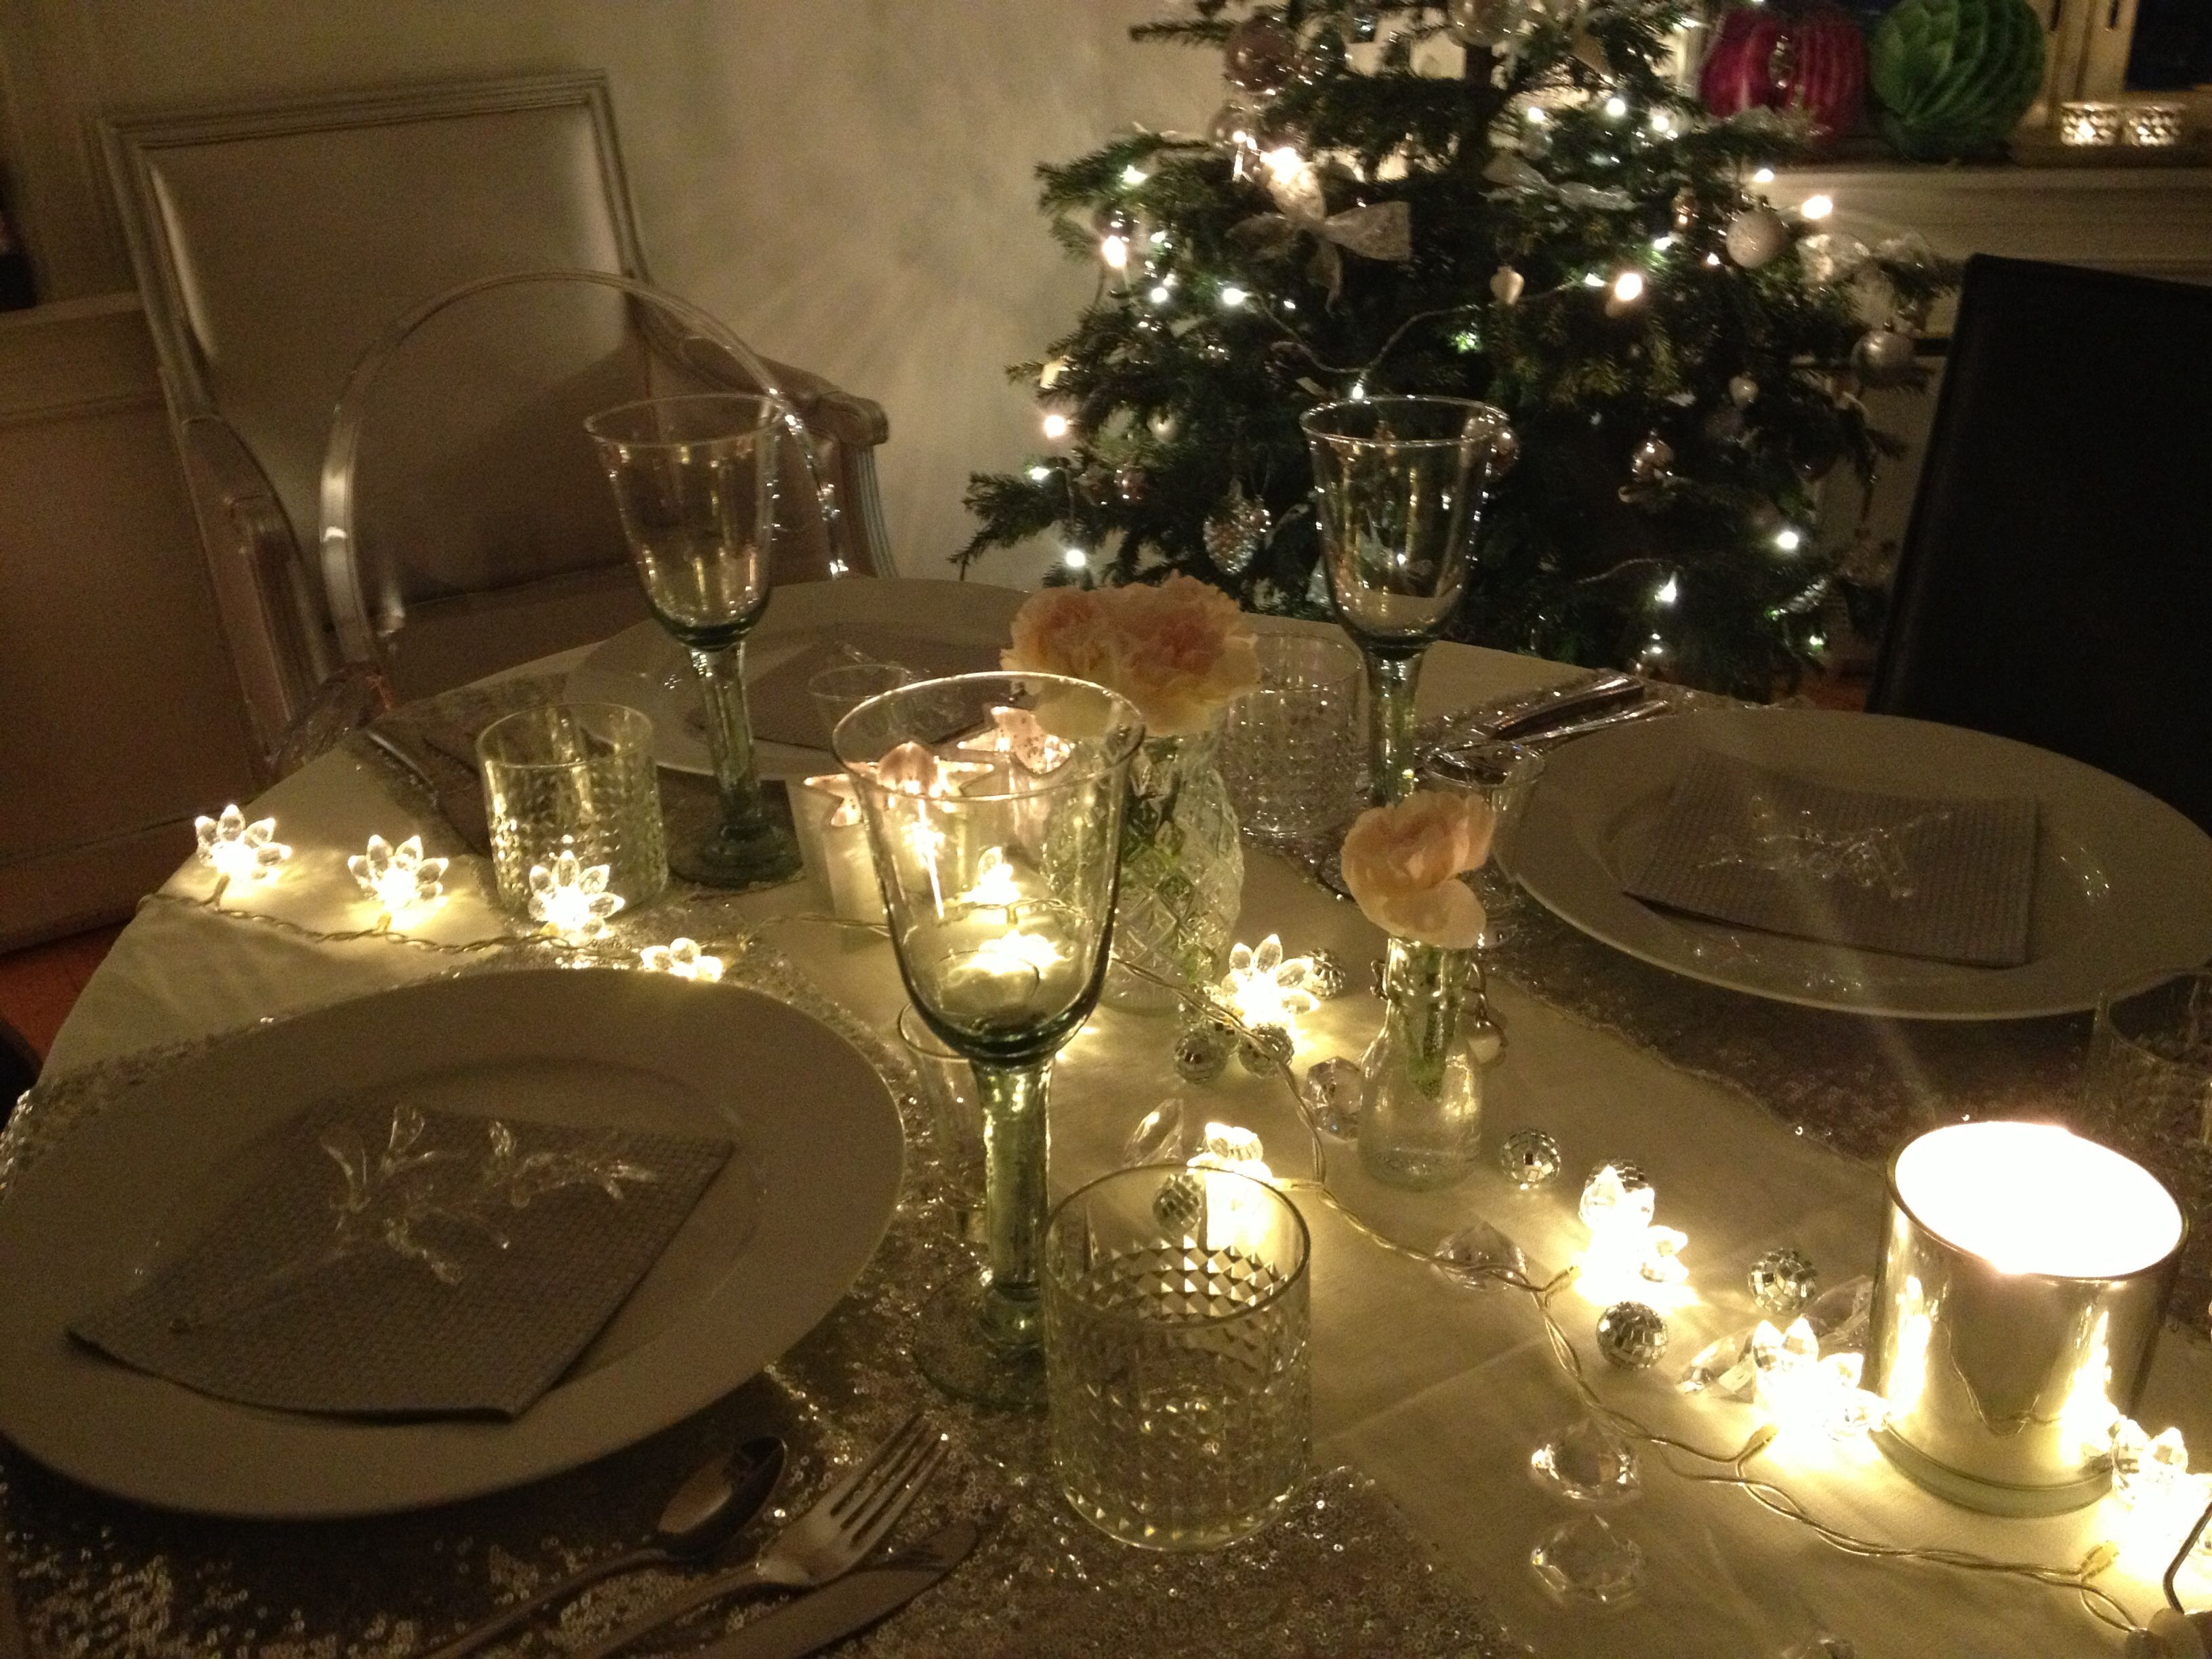 New years eve table decoration by idnw winter decor - New year table decorations ...